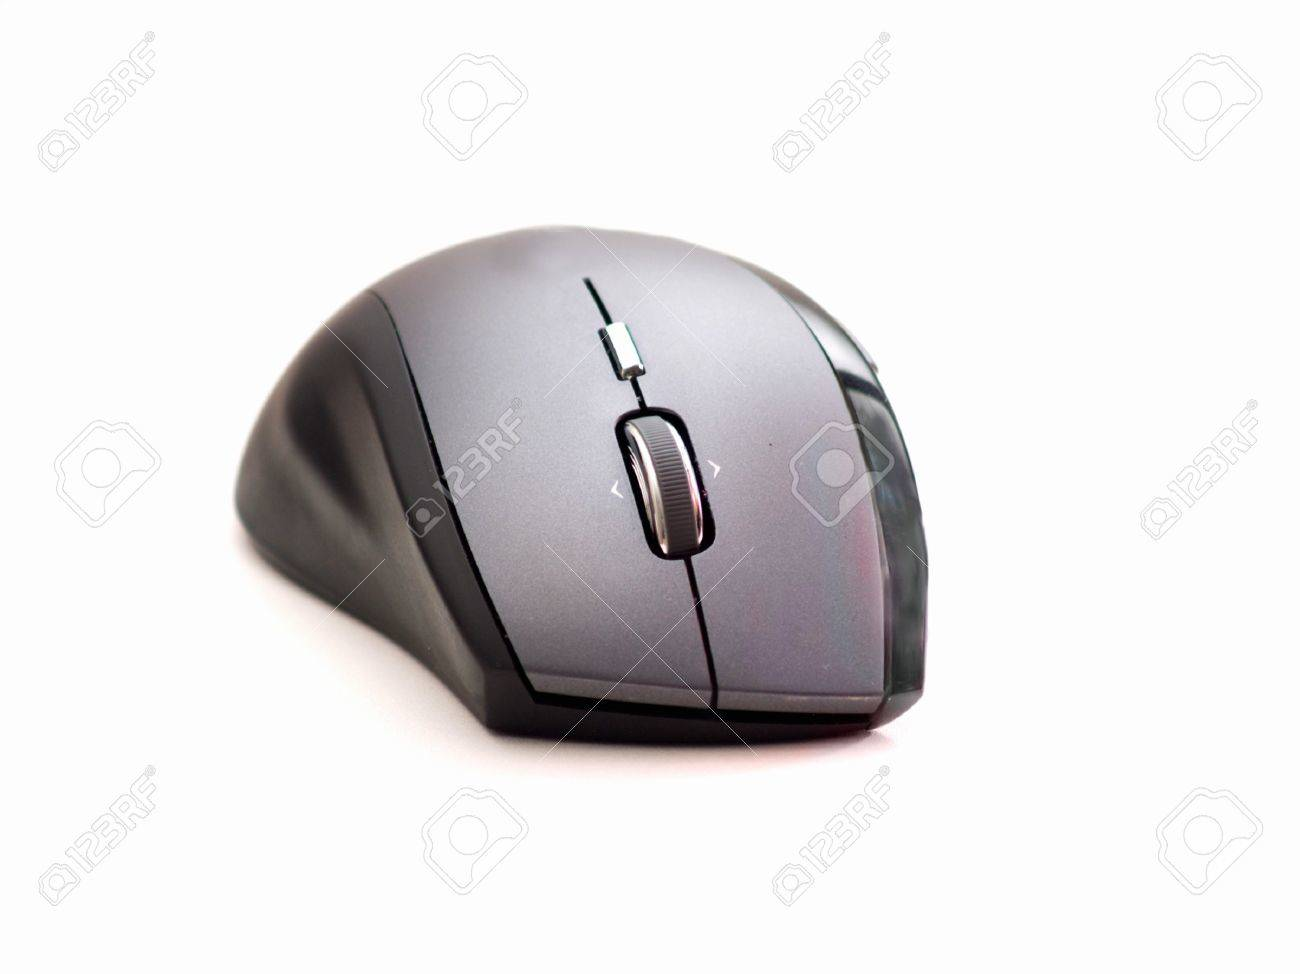 Black Contemporary computer mouse on white background Stock Photo - 4395838